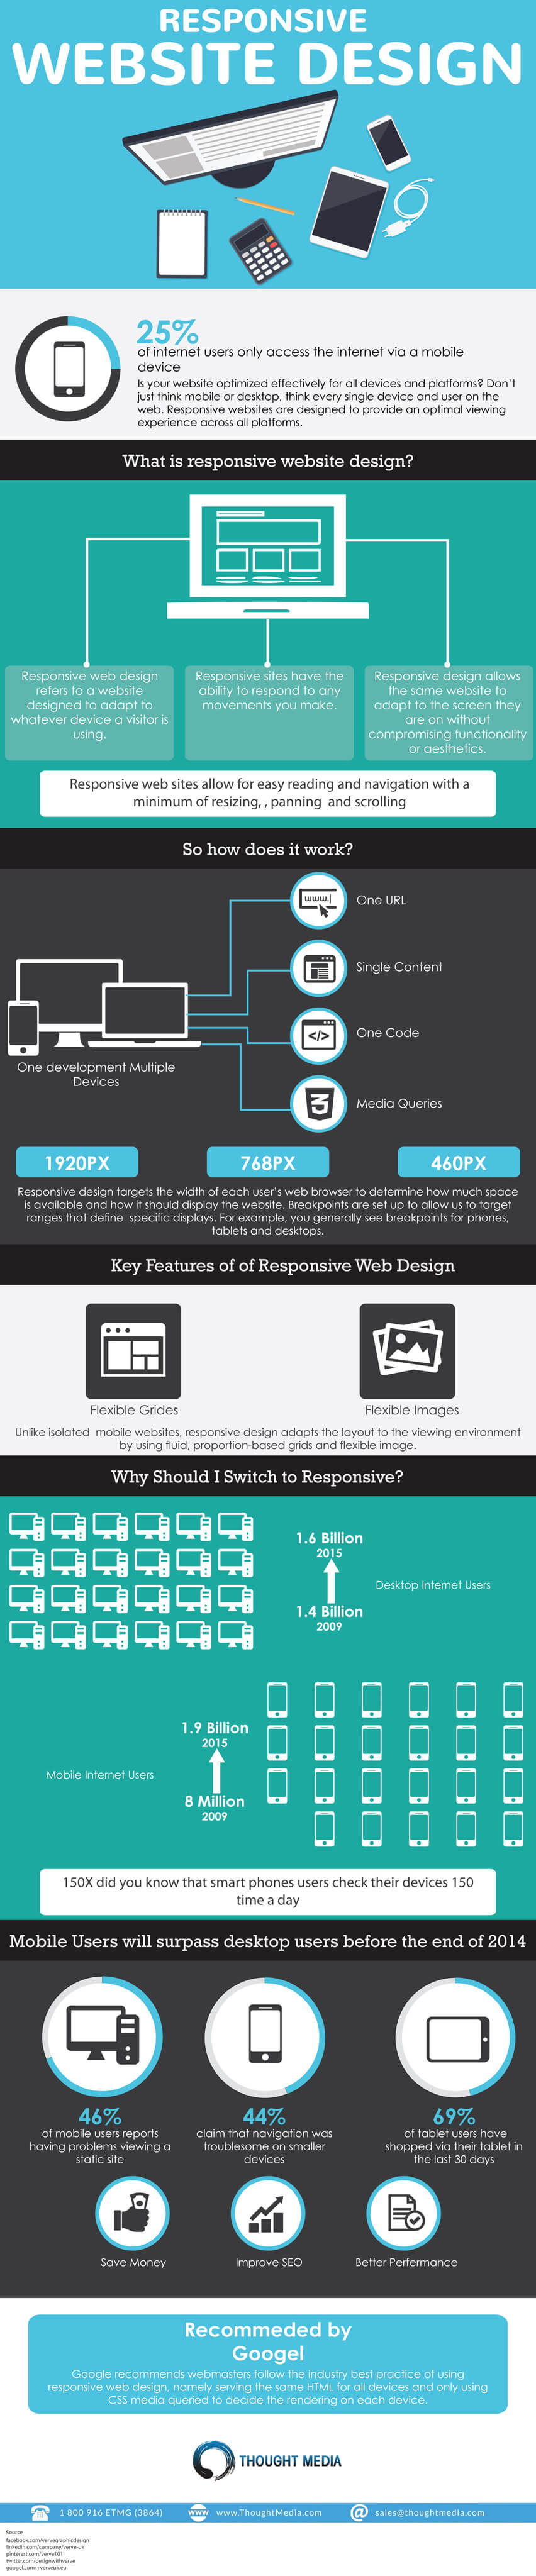 responsive-website-design-infographic